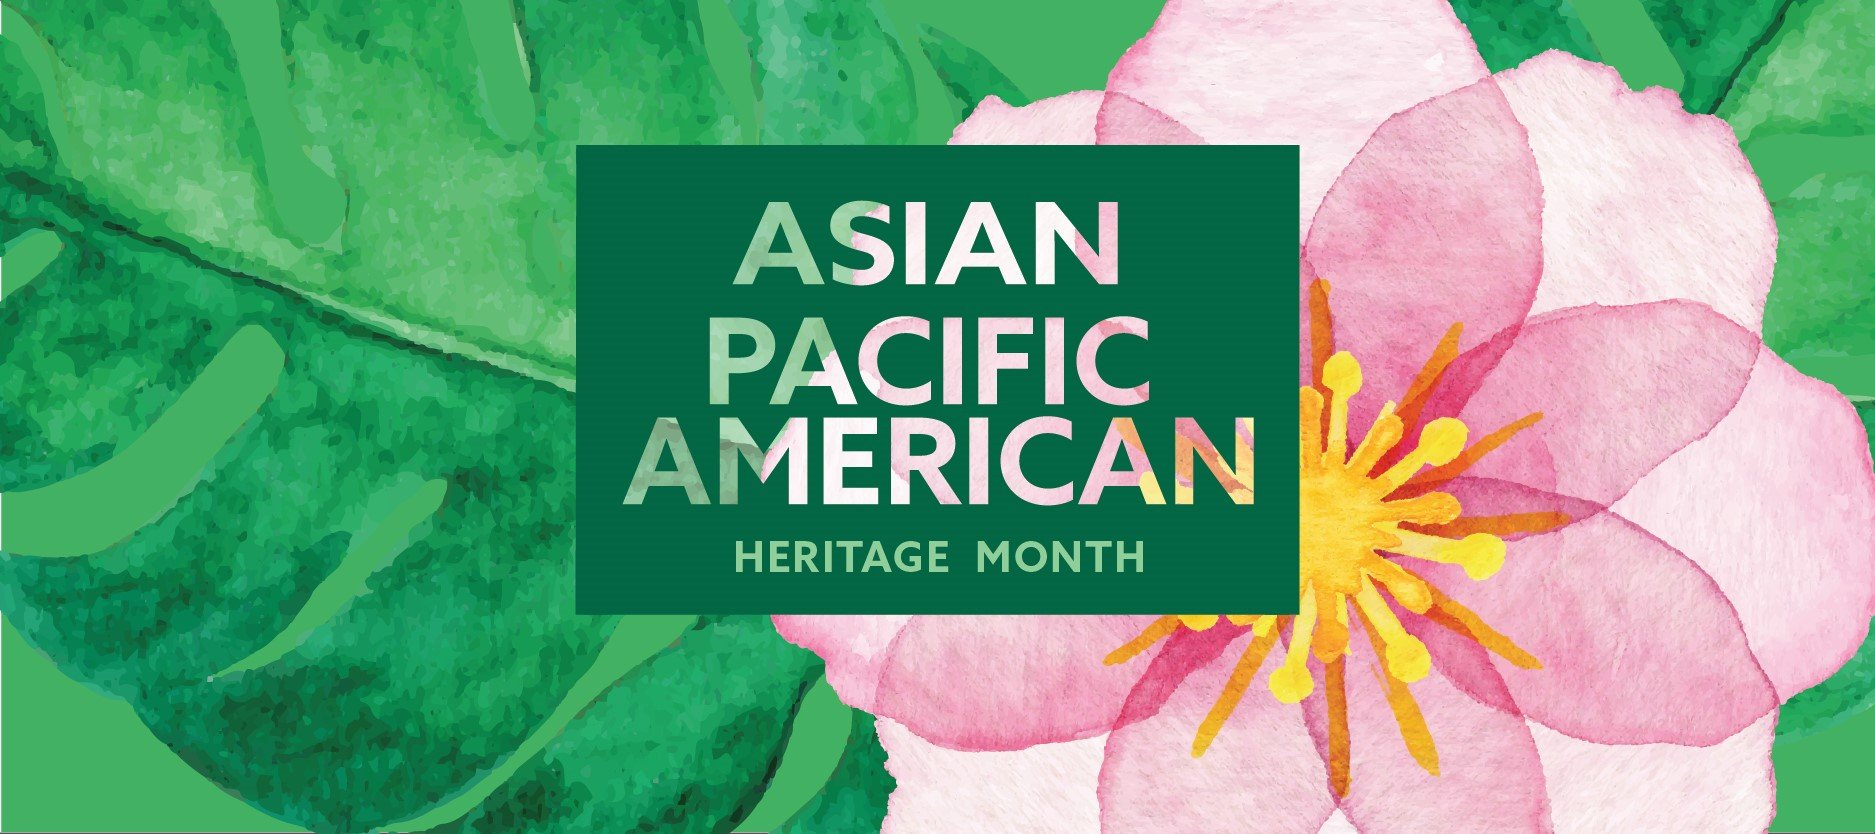 The words 'Asian Pacific American Heritage Month' in a green box over the image of a pink flower.